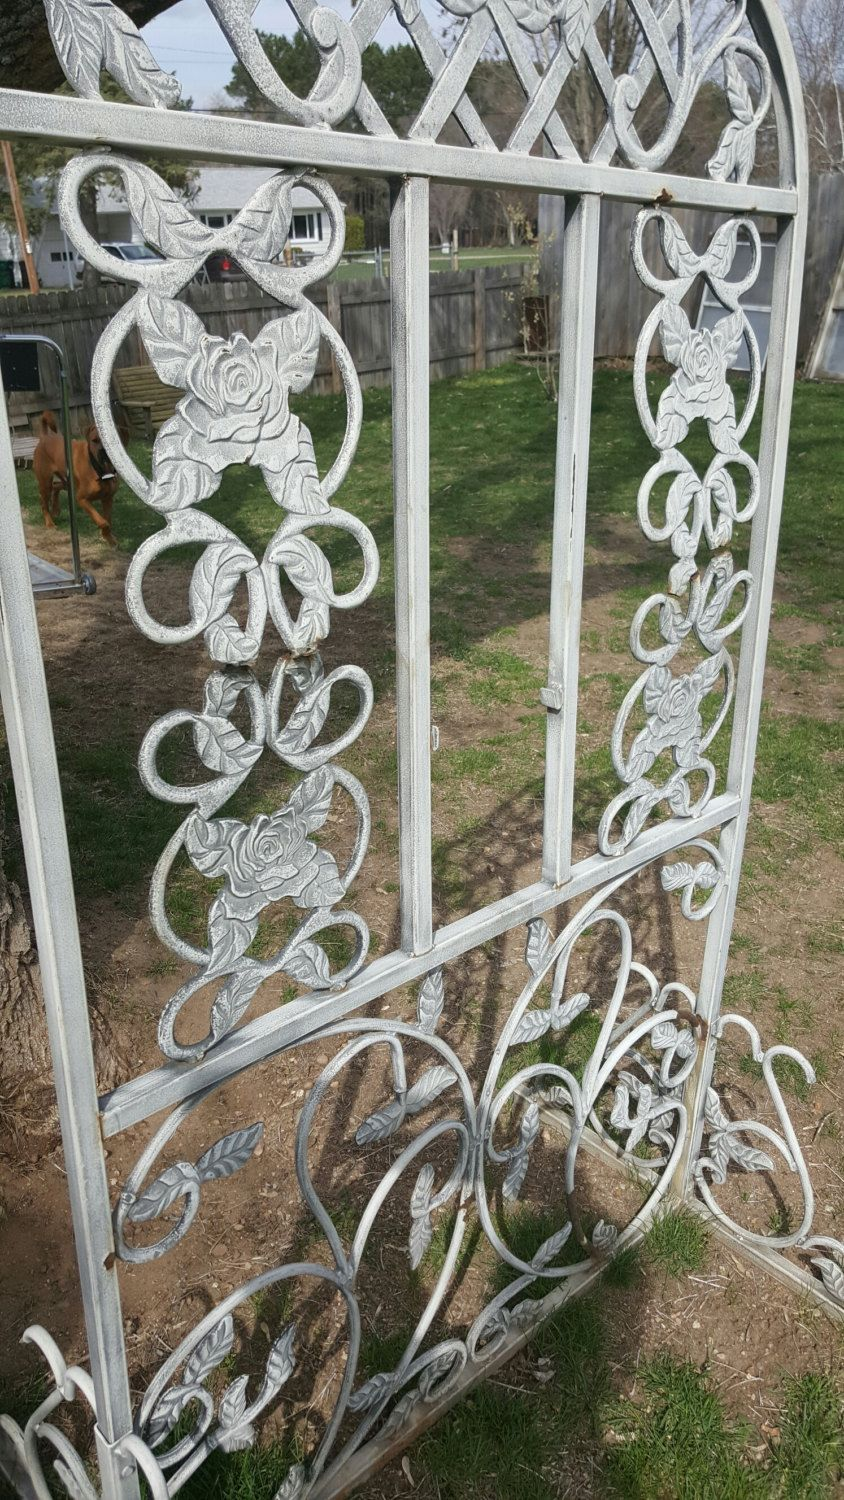 Wrought iron outdoor decor - Vintage Garden Trellis Cast Iron Garden Decor Flower Antique Trellis Wrought Iron Gate Outdoor Decor Metal